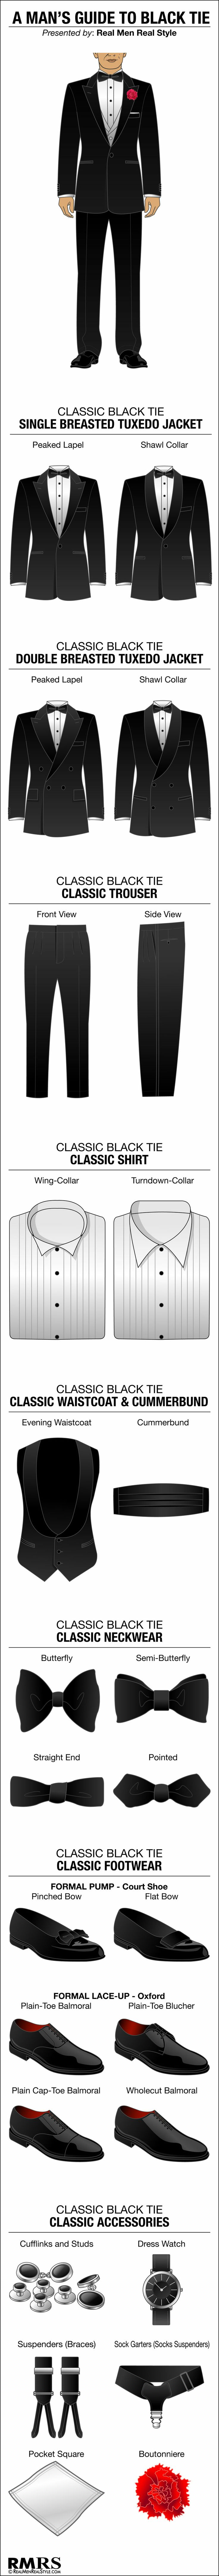 How To Wear Black Tie Infographic – Visual Guide To Wearing A Tuxedo (via @Antonio Covelo Covelo Covelo Centeno)